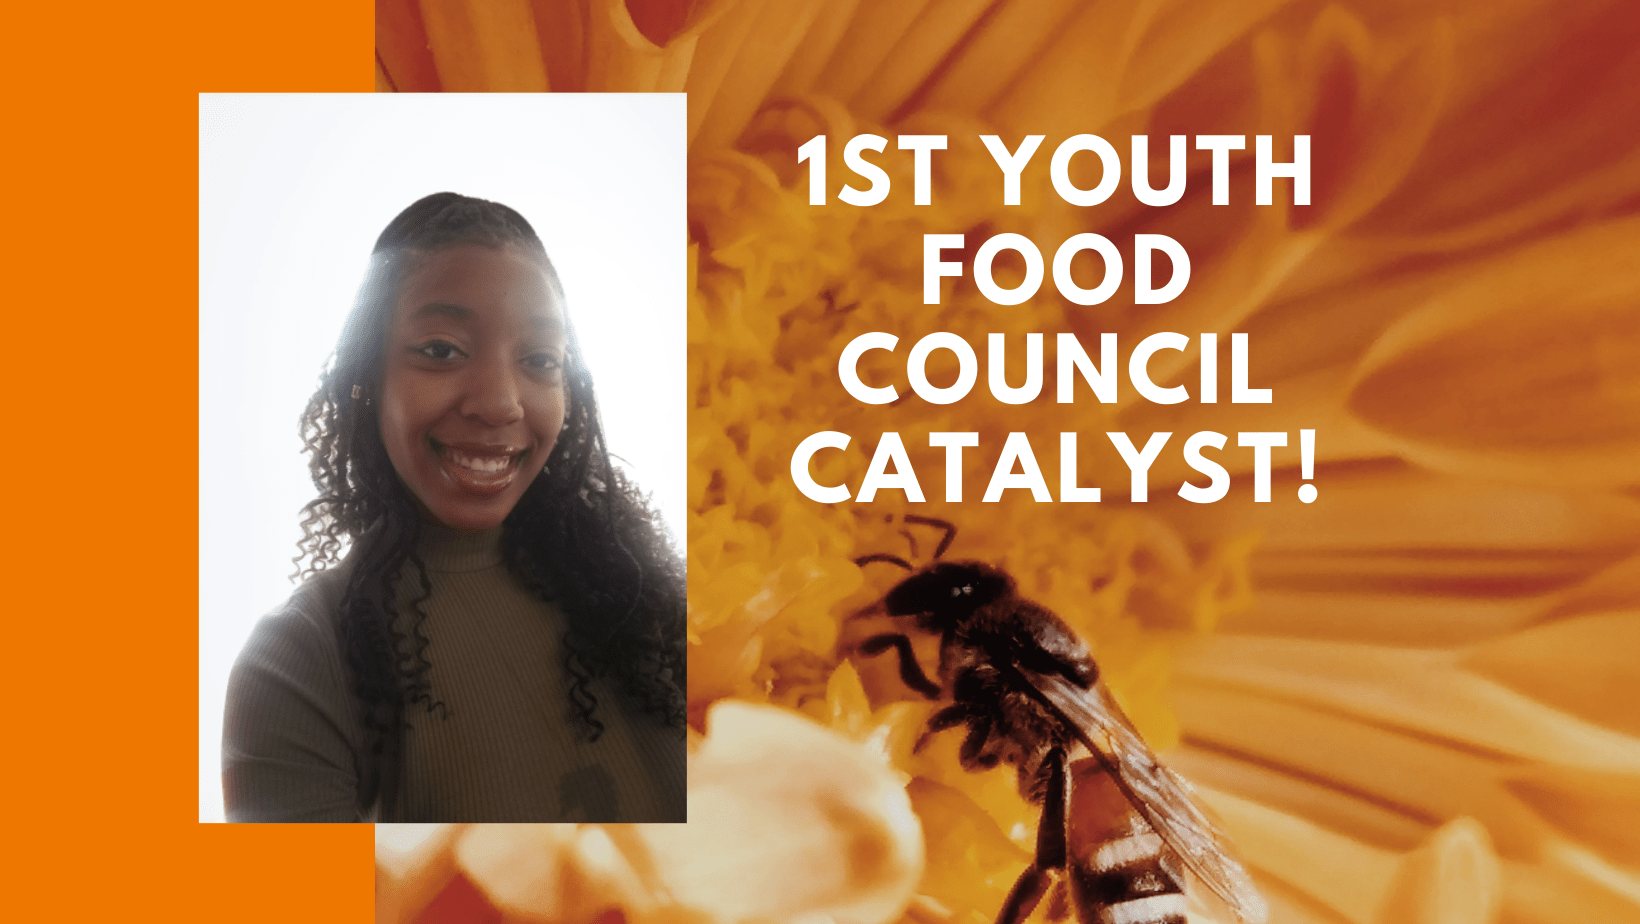 Youth Food Council Catalyst Joins the Team!